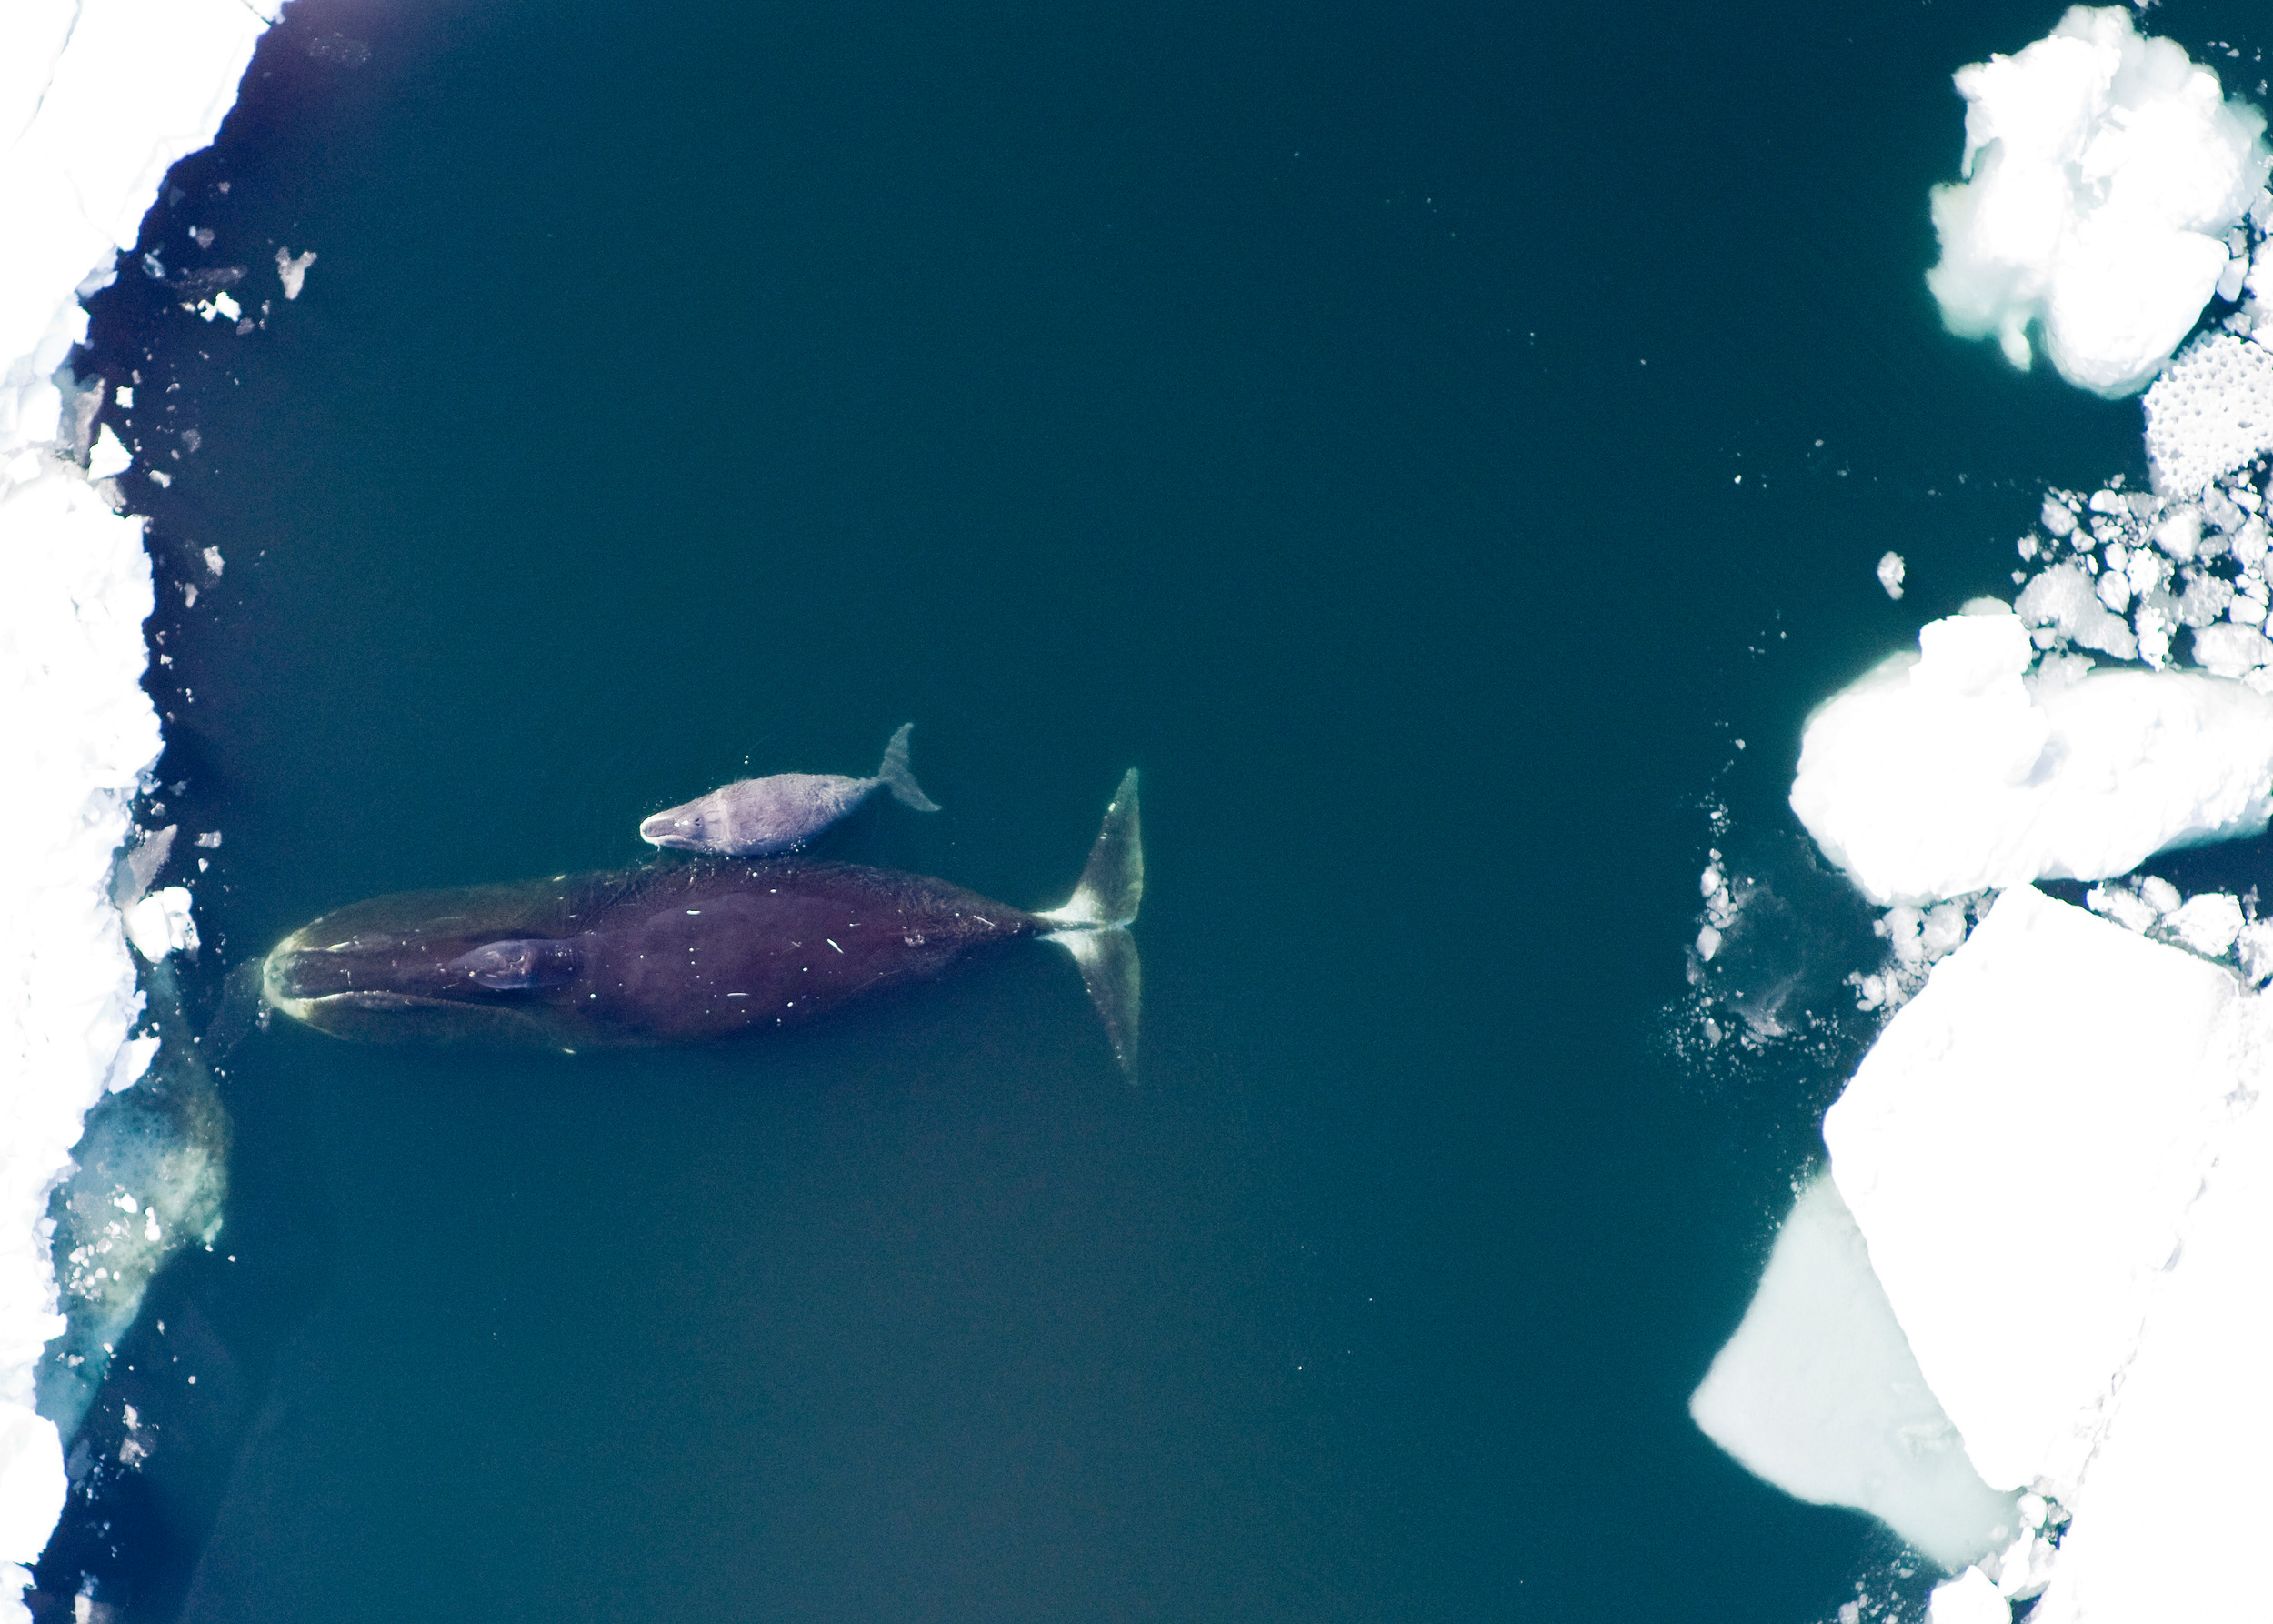 Bowhead whale and calf in the Arctic.